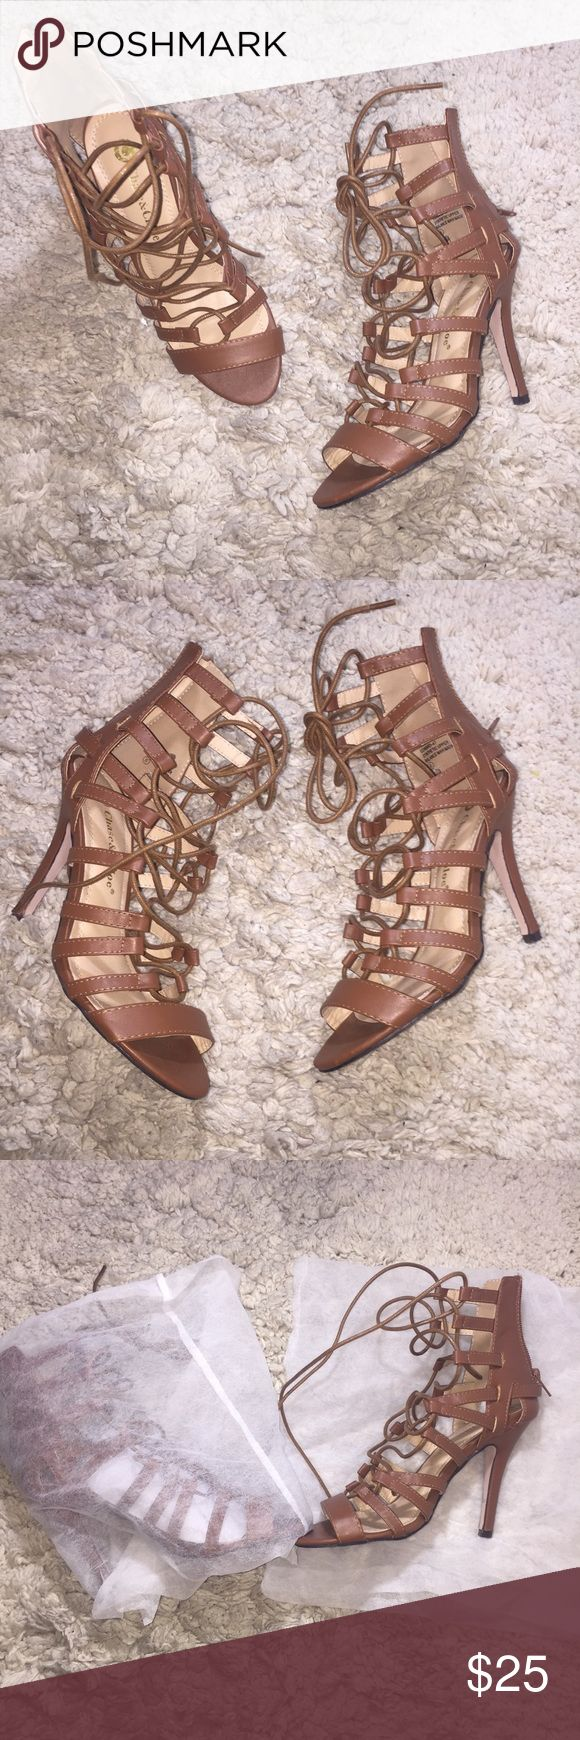 Chase & Chloe High Heel Sandal Tan High Heel Gladiator Sandal. Worn ONCE. I don't have the box they came in but I keep them on the white small bag showed in picture. •Comfortable •True to size chase & chloe Shoes Heels